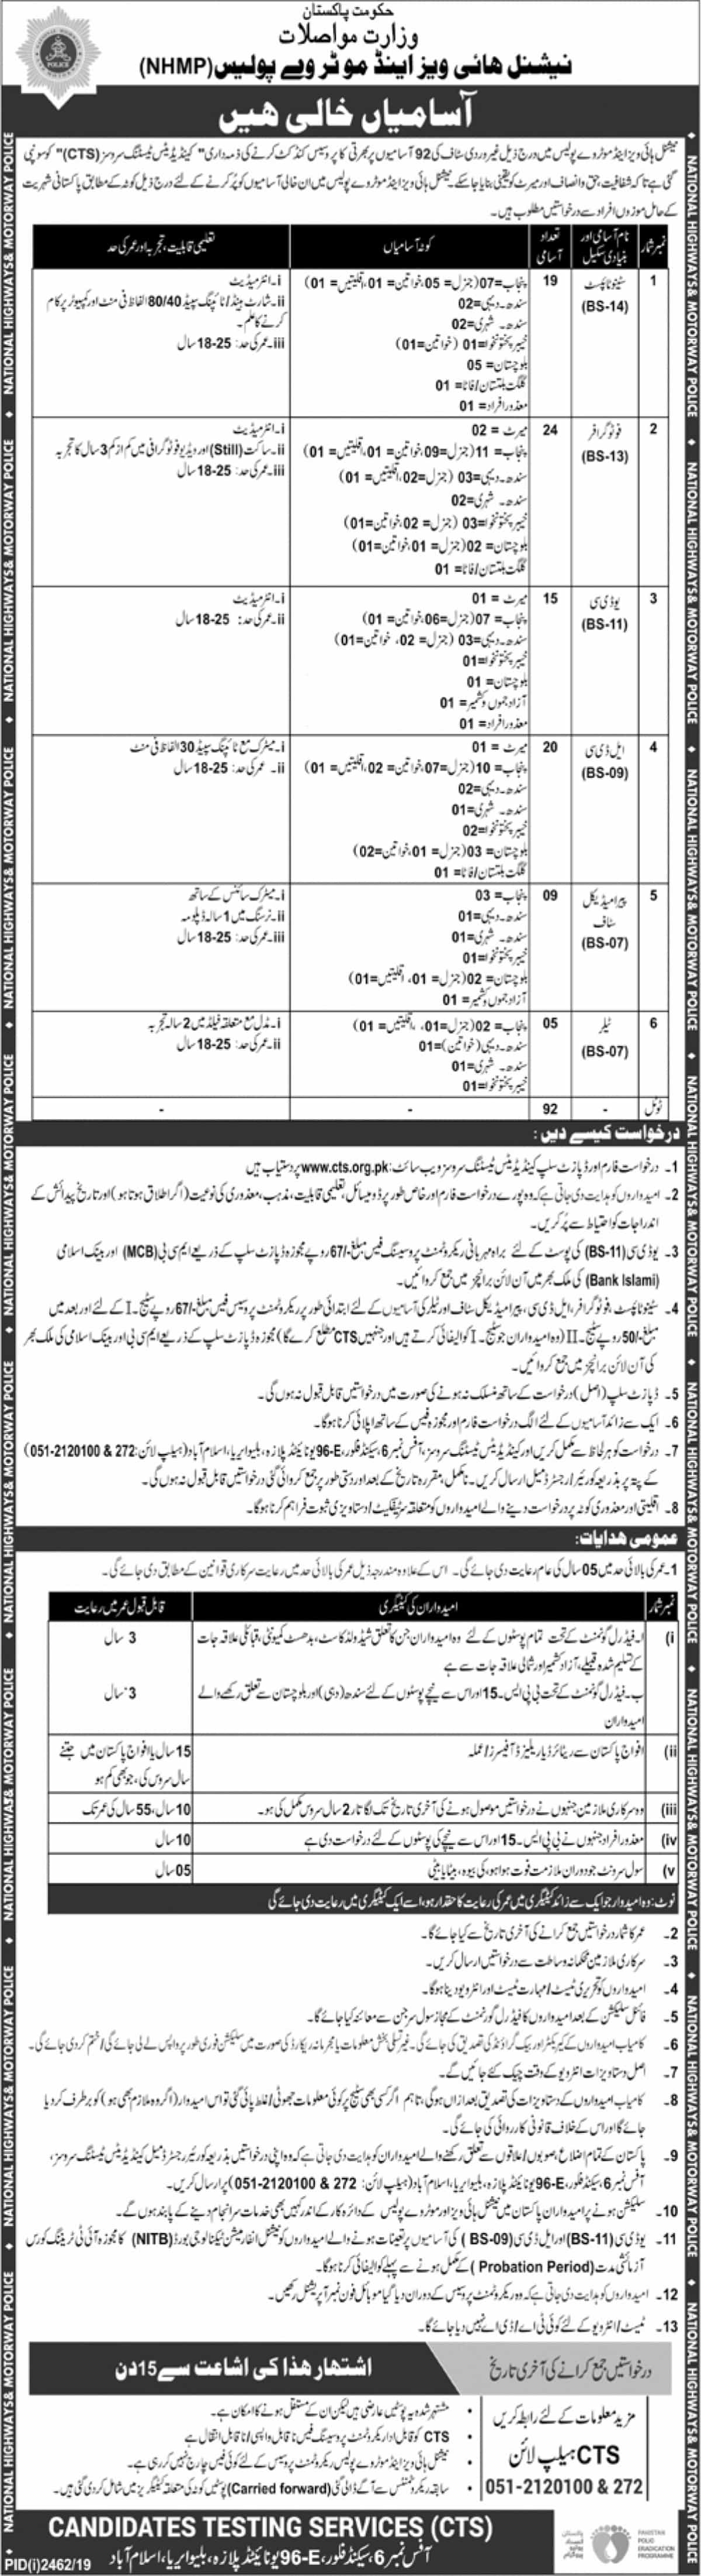 National Highways & Motorway Police NHMP Jobs November 2019 CTS